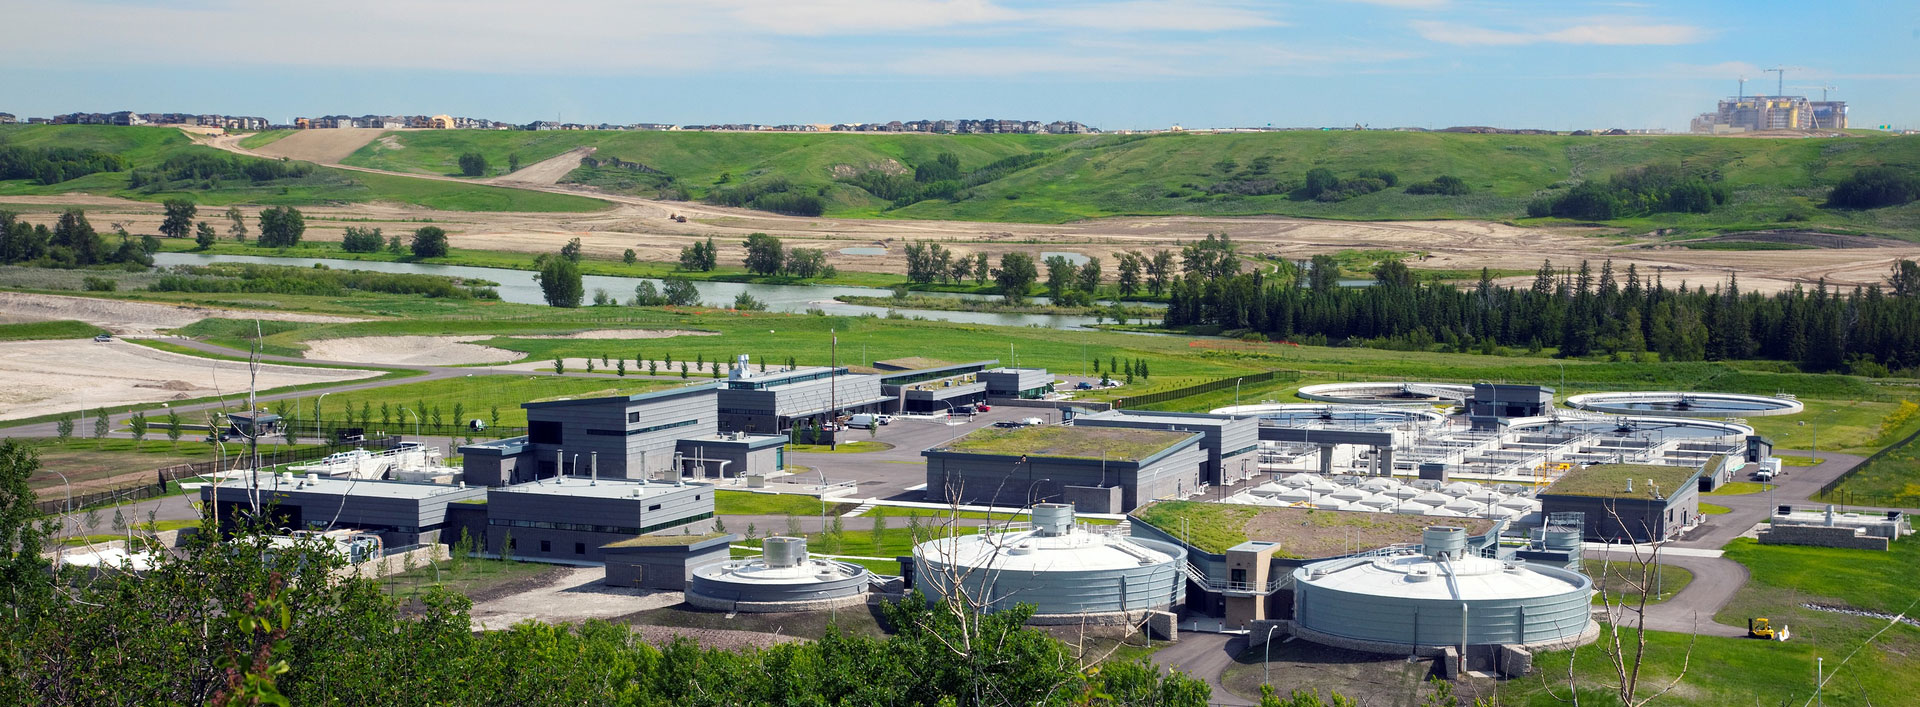 Calgary enters MoU to turn sewage into sustainable biofuels